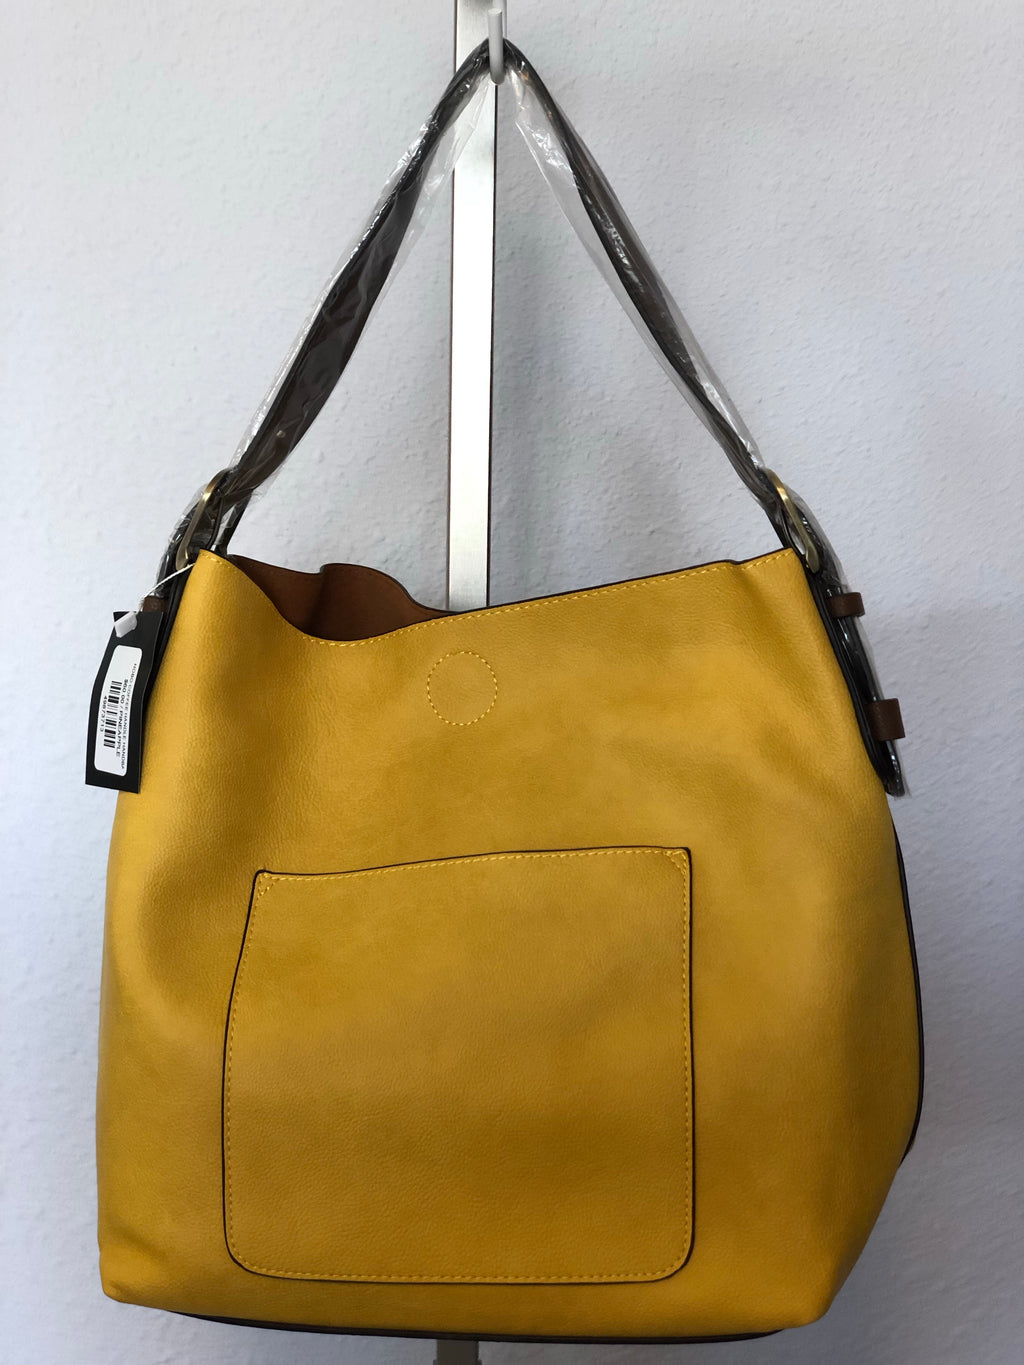 HOBO COFFEE HANDLE HANDBAG